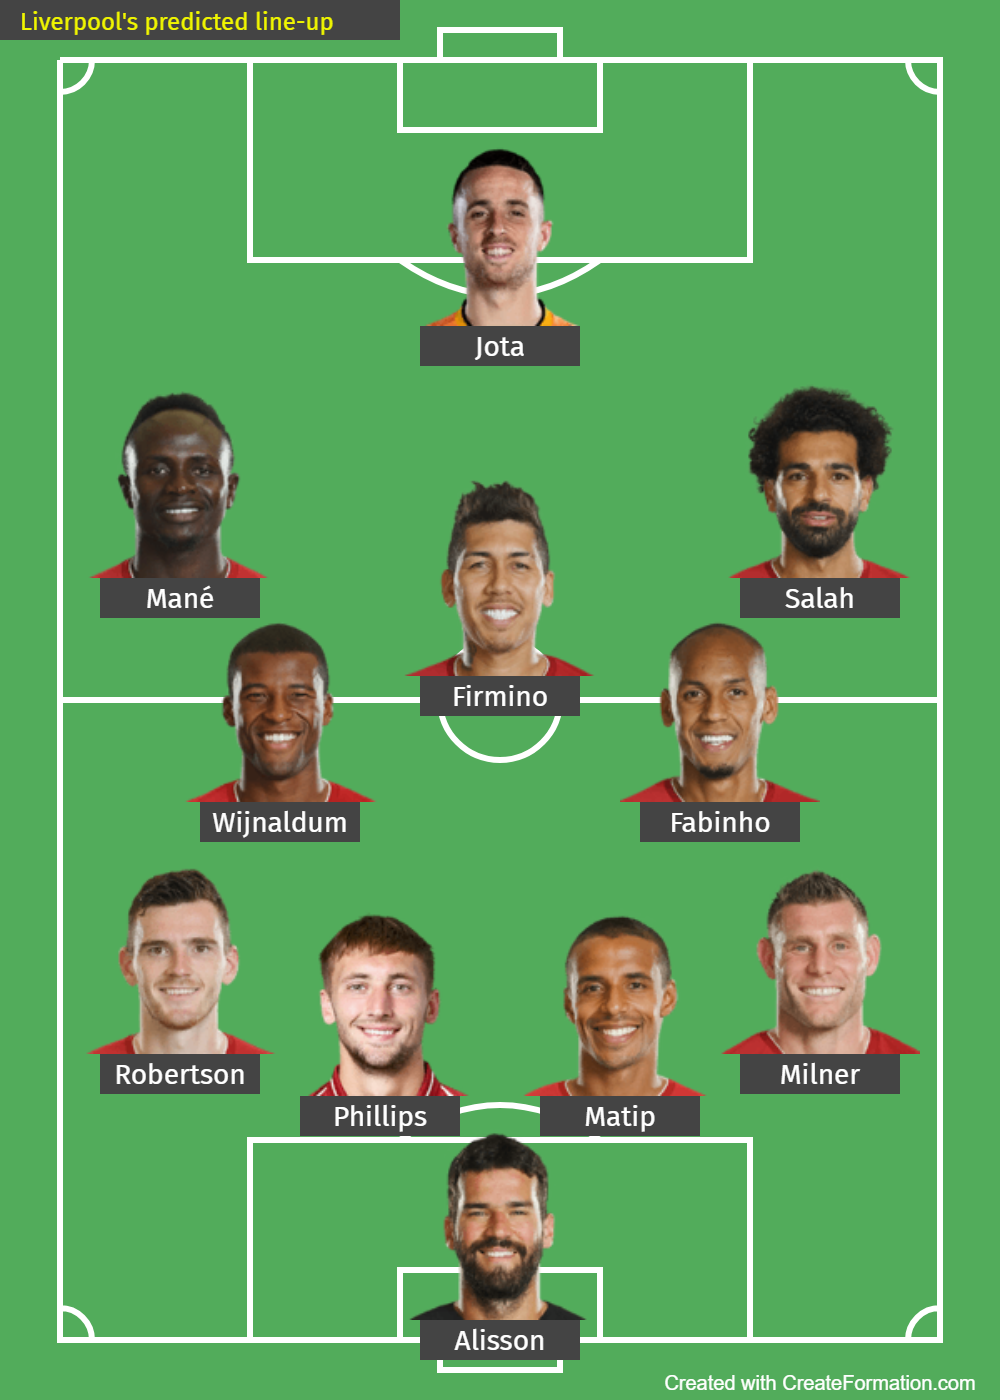 Liverpool's predicted line-up against Brighton and Hove Albion on November 28, 2020. (Template Credits: Createformation.com)